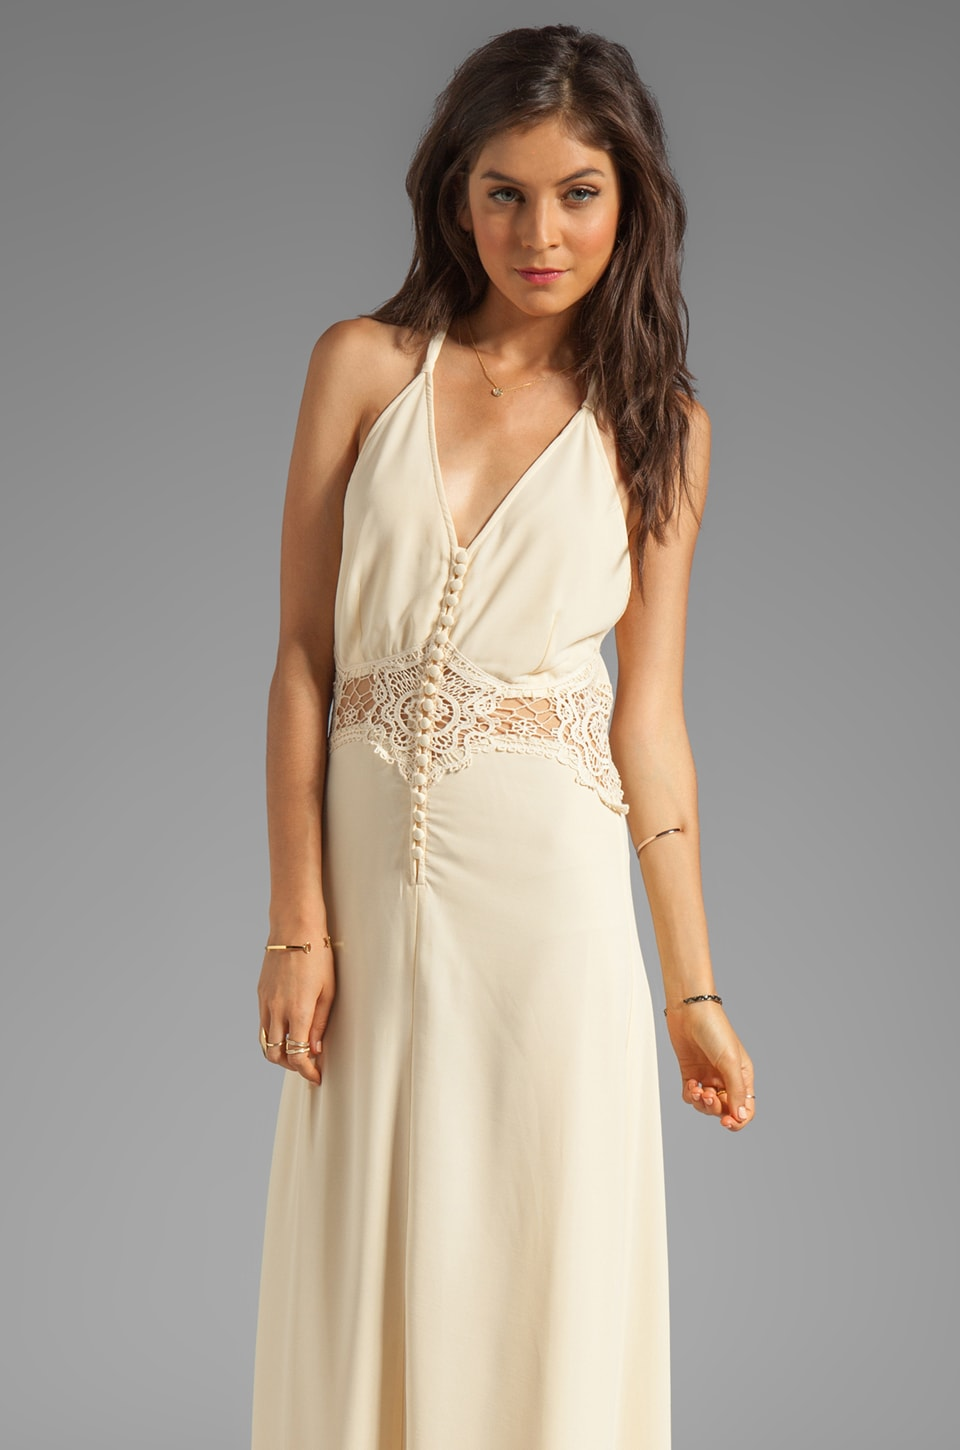 JARLO Siobhan Maxi Dress in Ivory